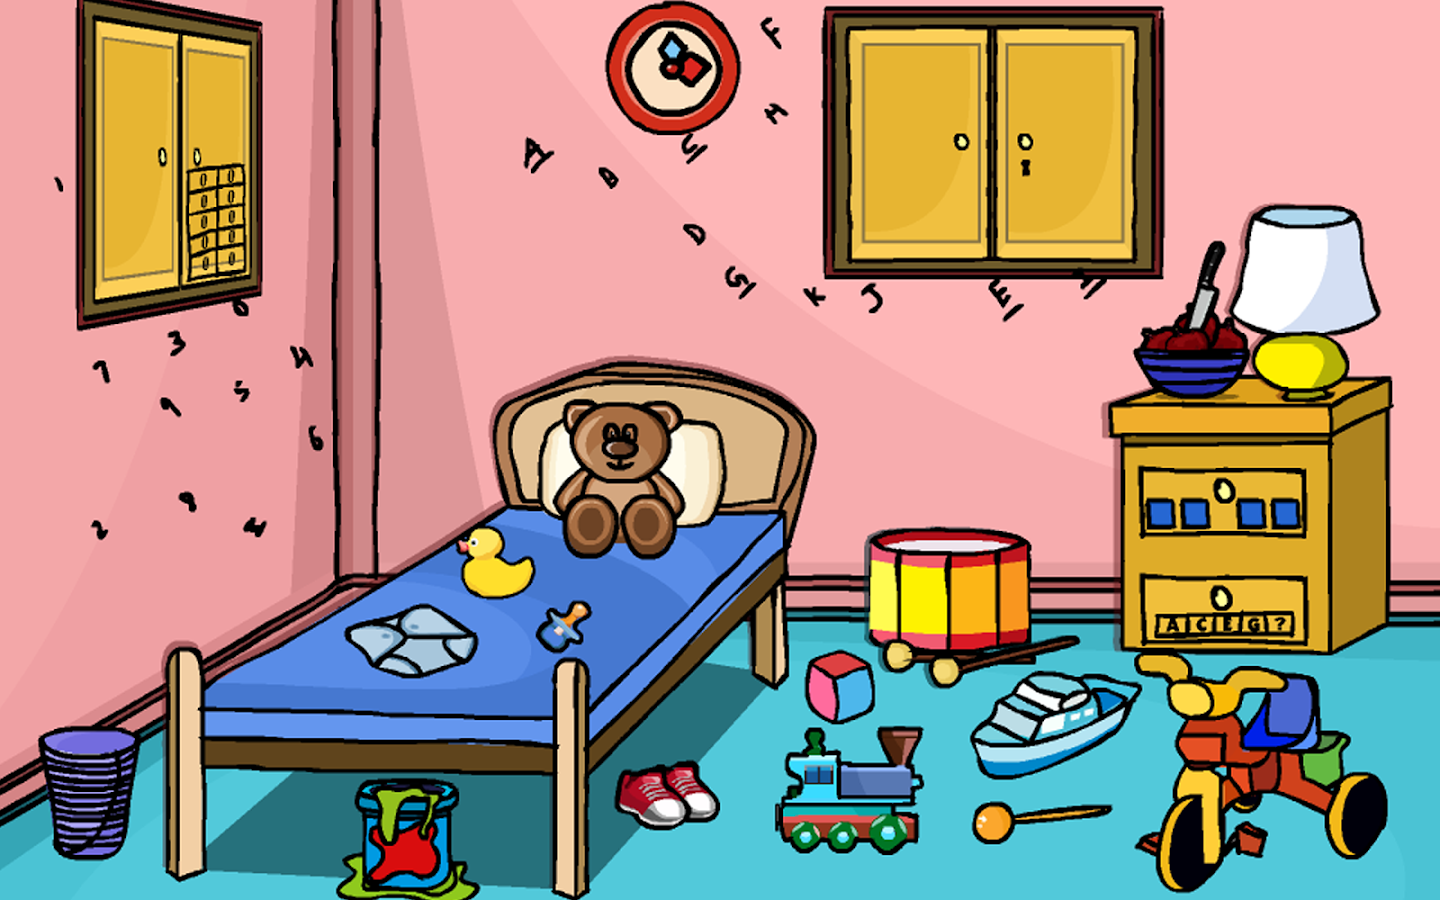 Room escape puzzle daycare android apps on google play for Escape puzzle